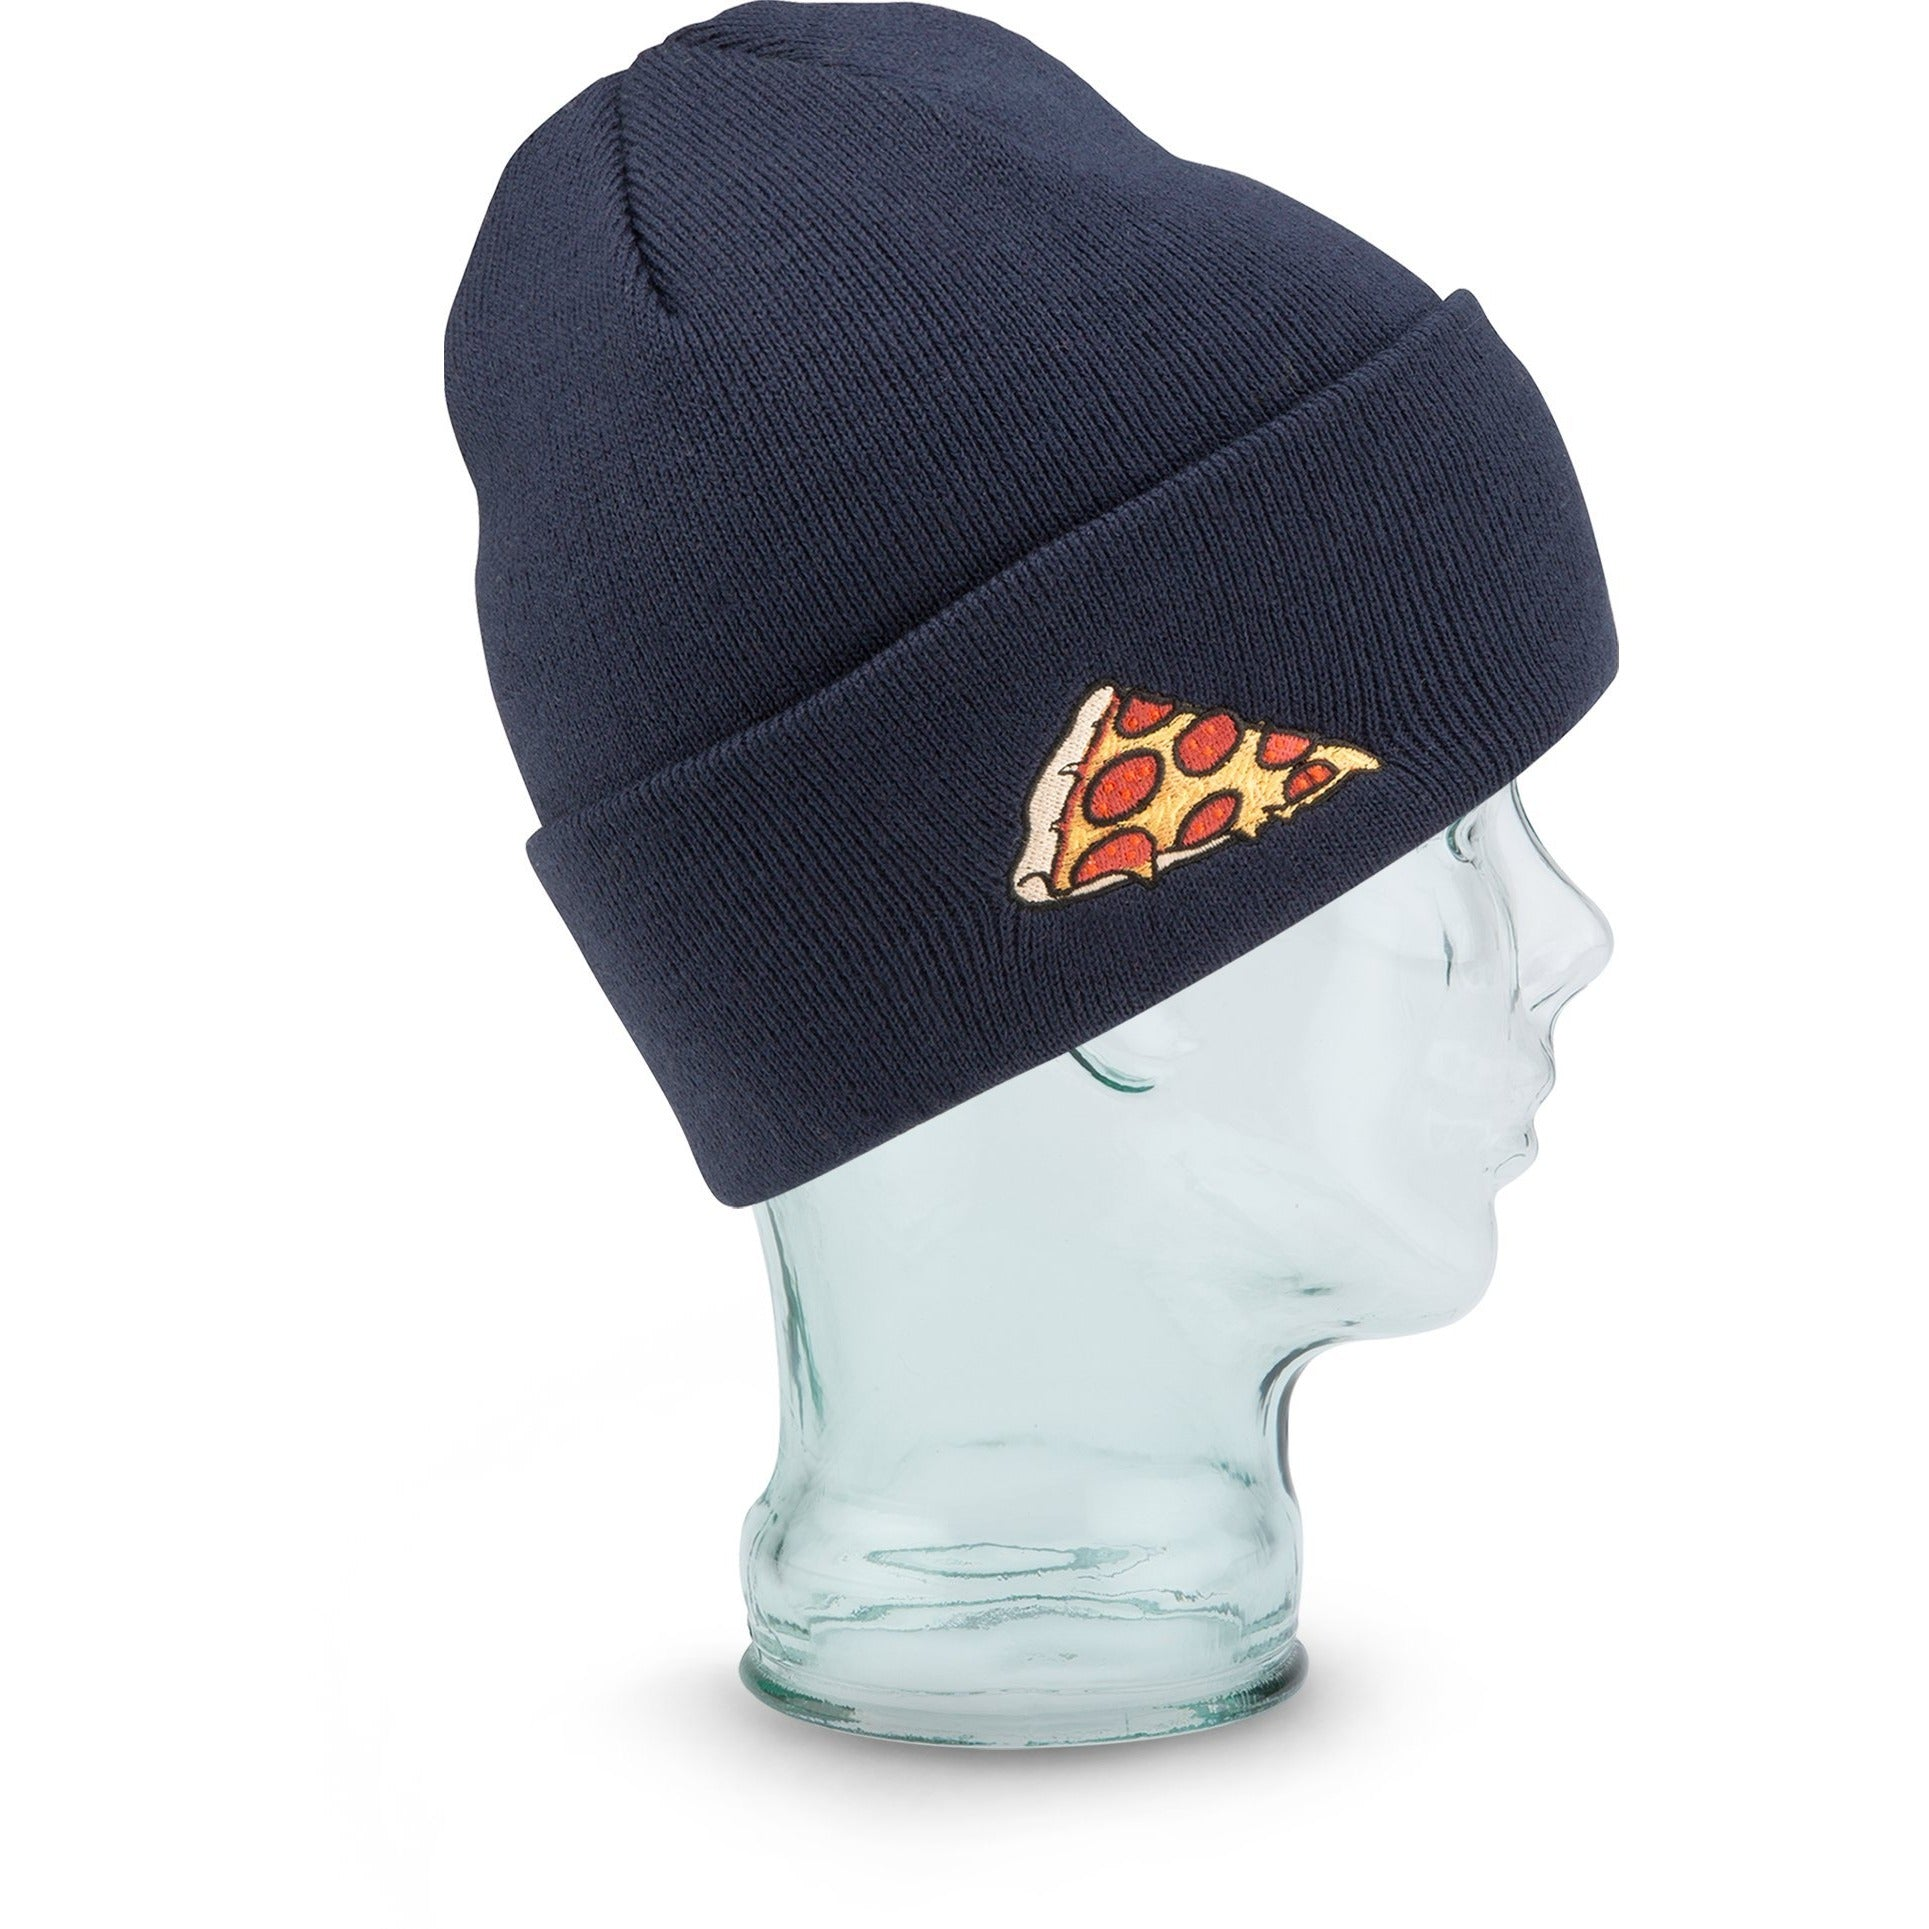 Coal Crave Pizza Beanie - 88 Gear